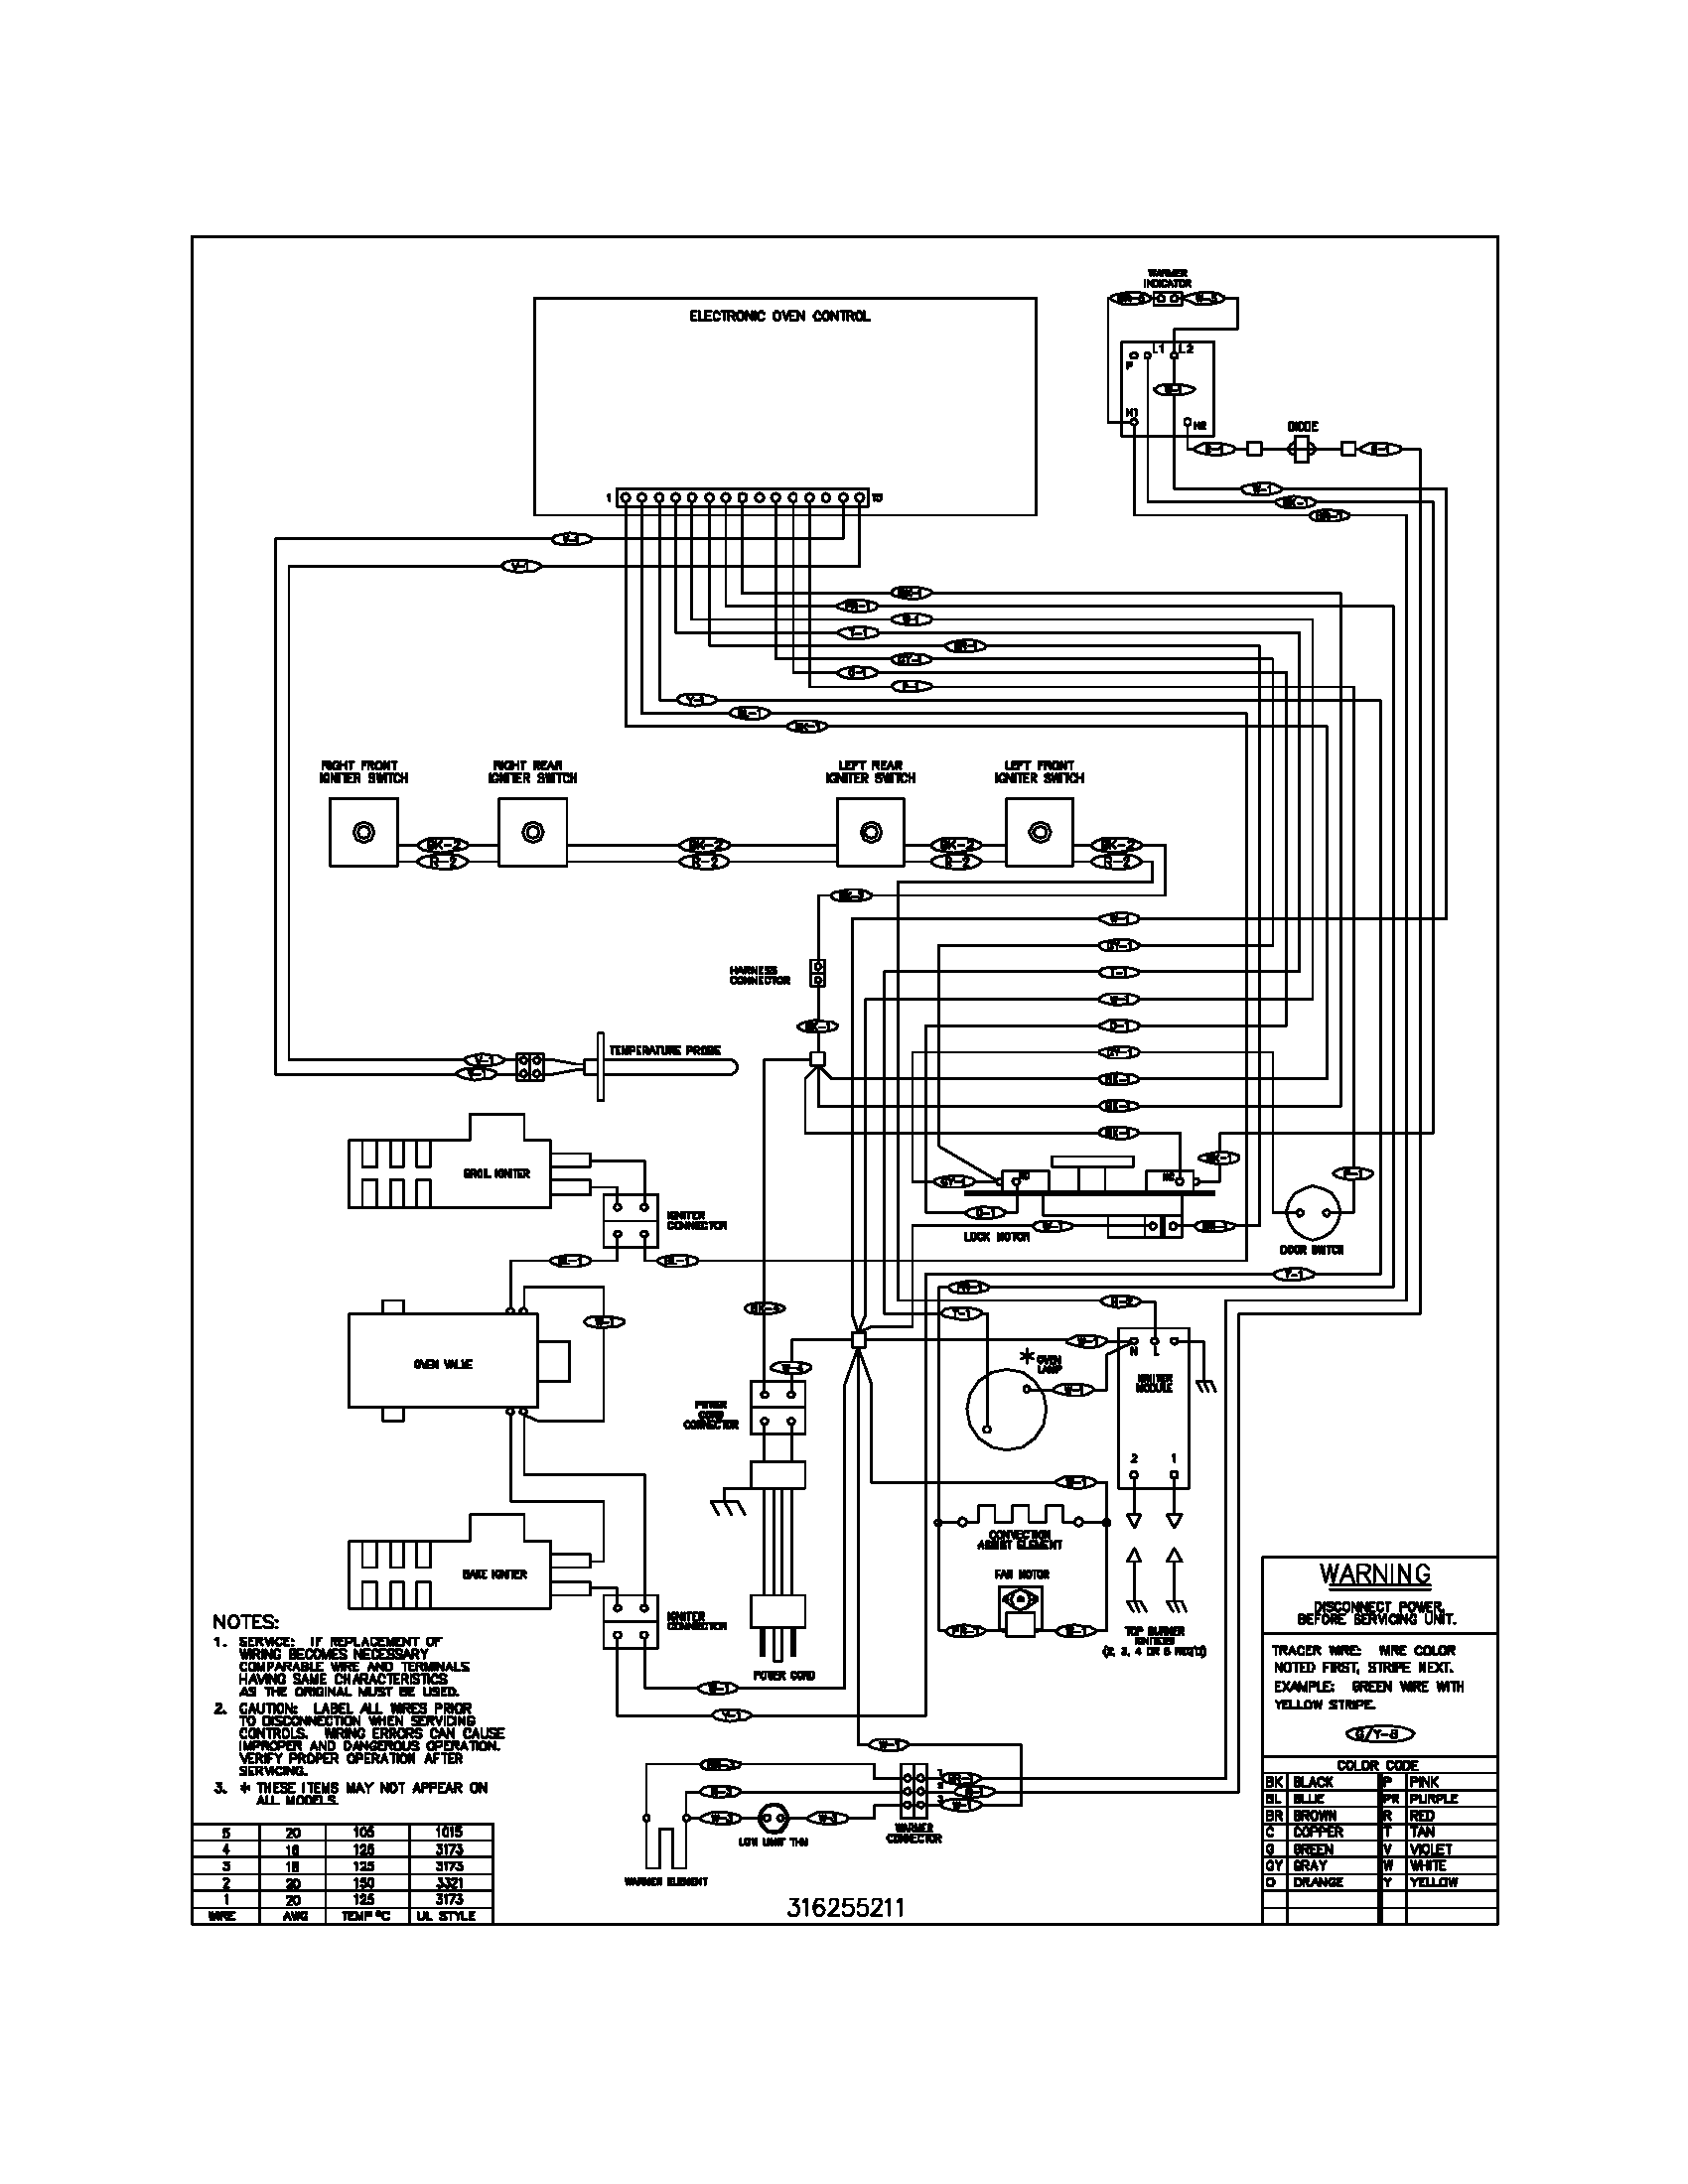 wiring diagram parts frigidaire plgf389ccc gas range timer stove clocks and appliance frigidaire refrigerator wiring schematic at gsmx.co